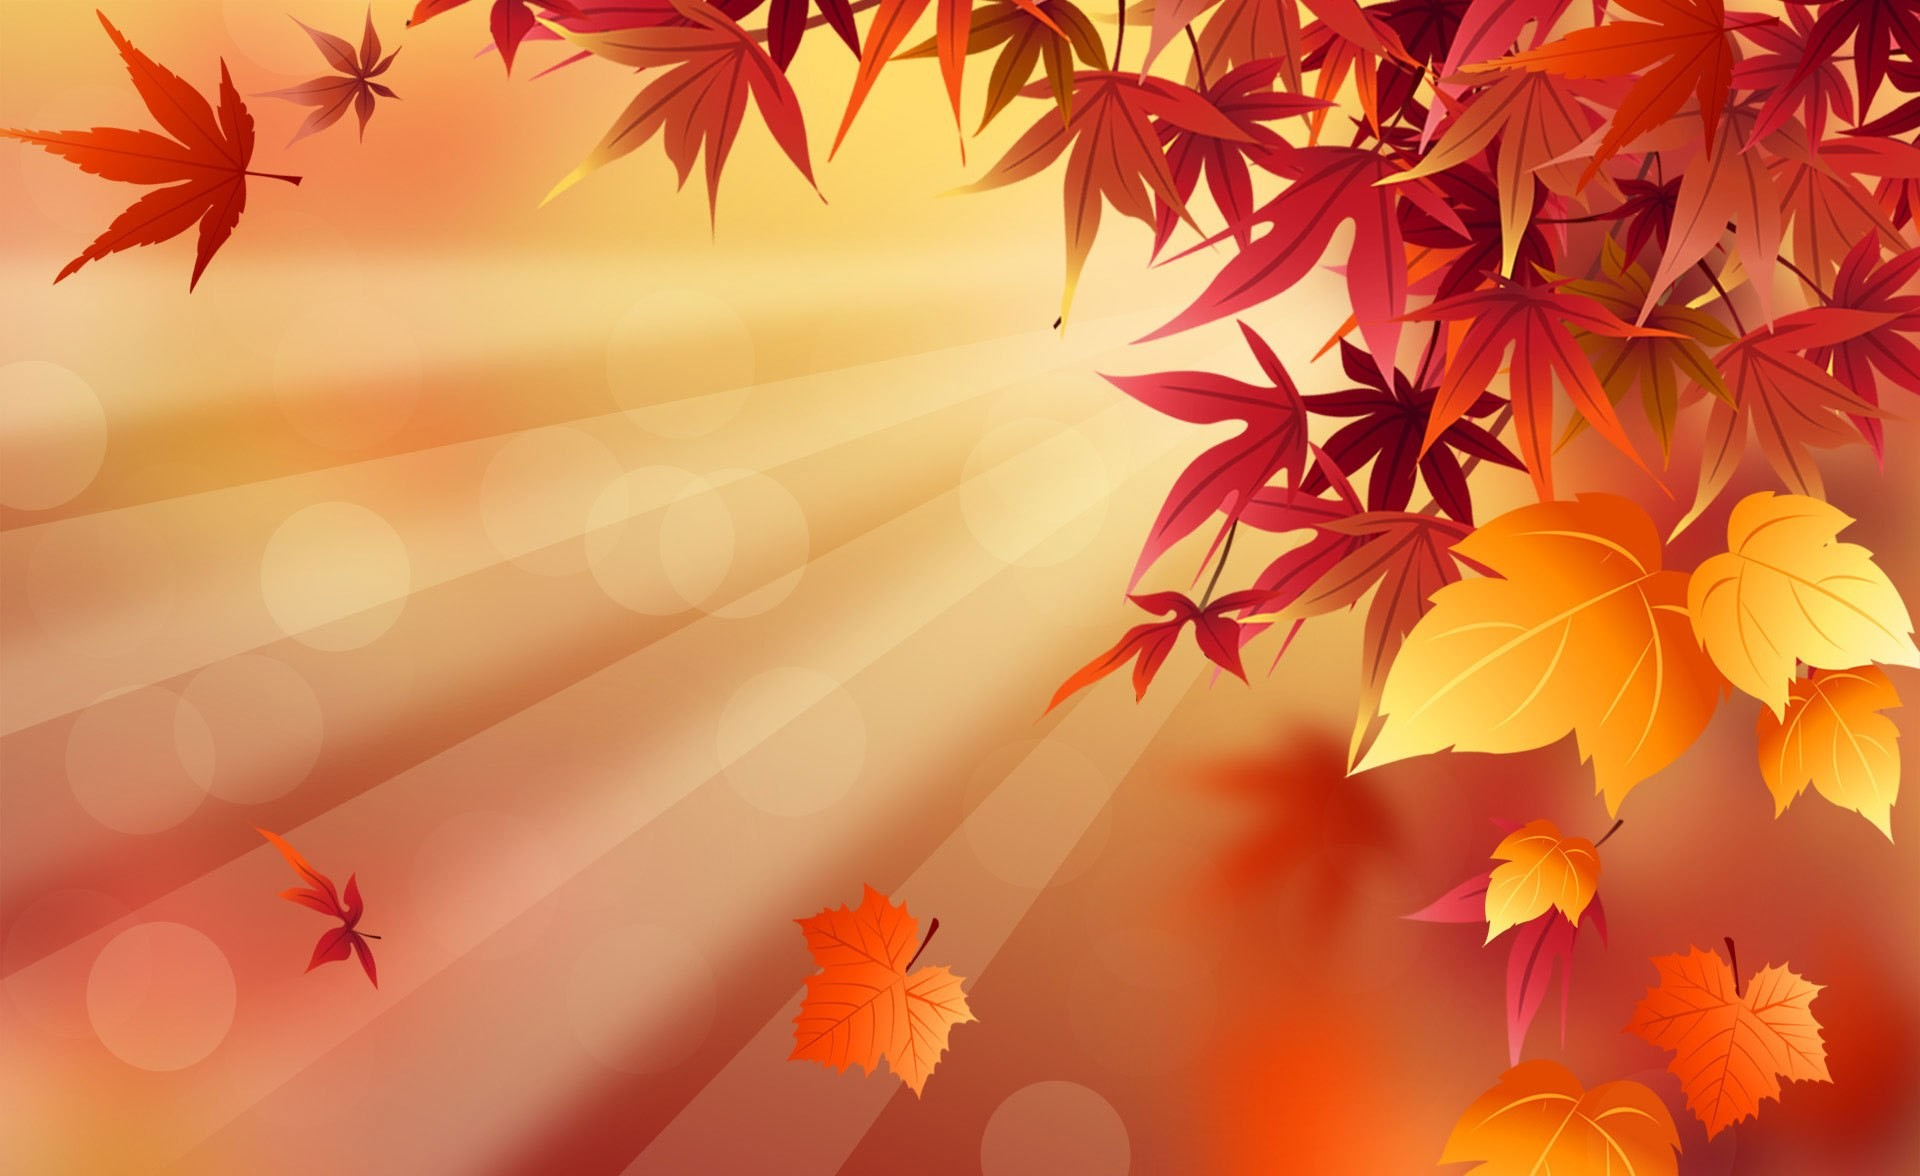 2011 Autumn HD Wallpapers to Download | CreativityWindow™